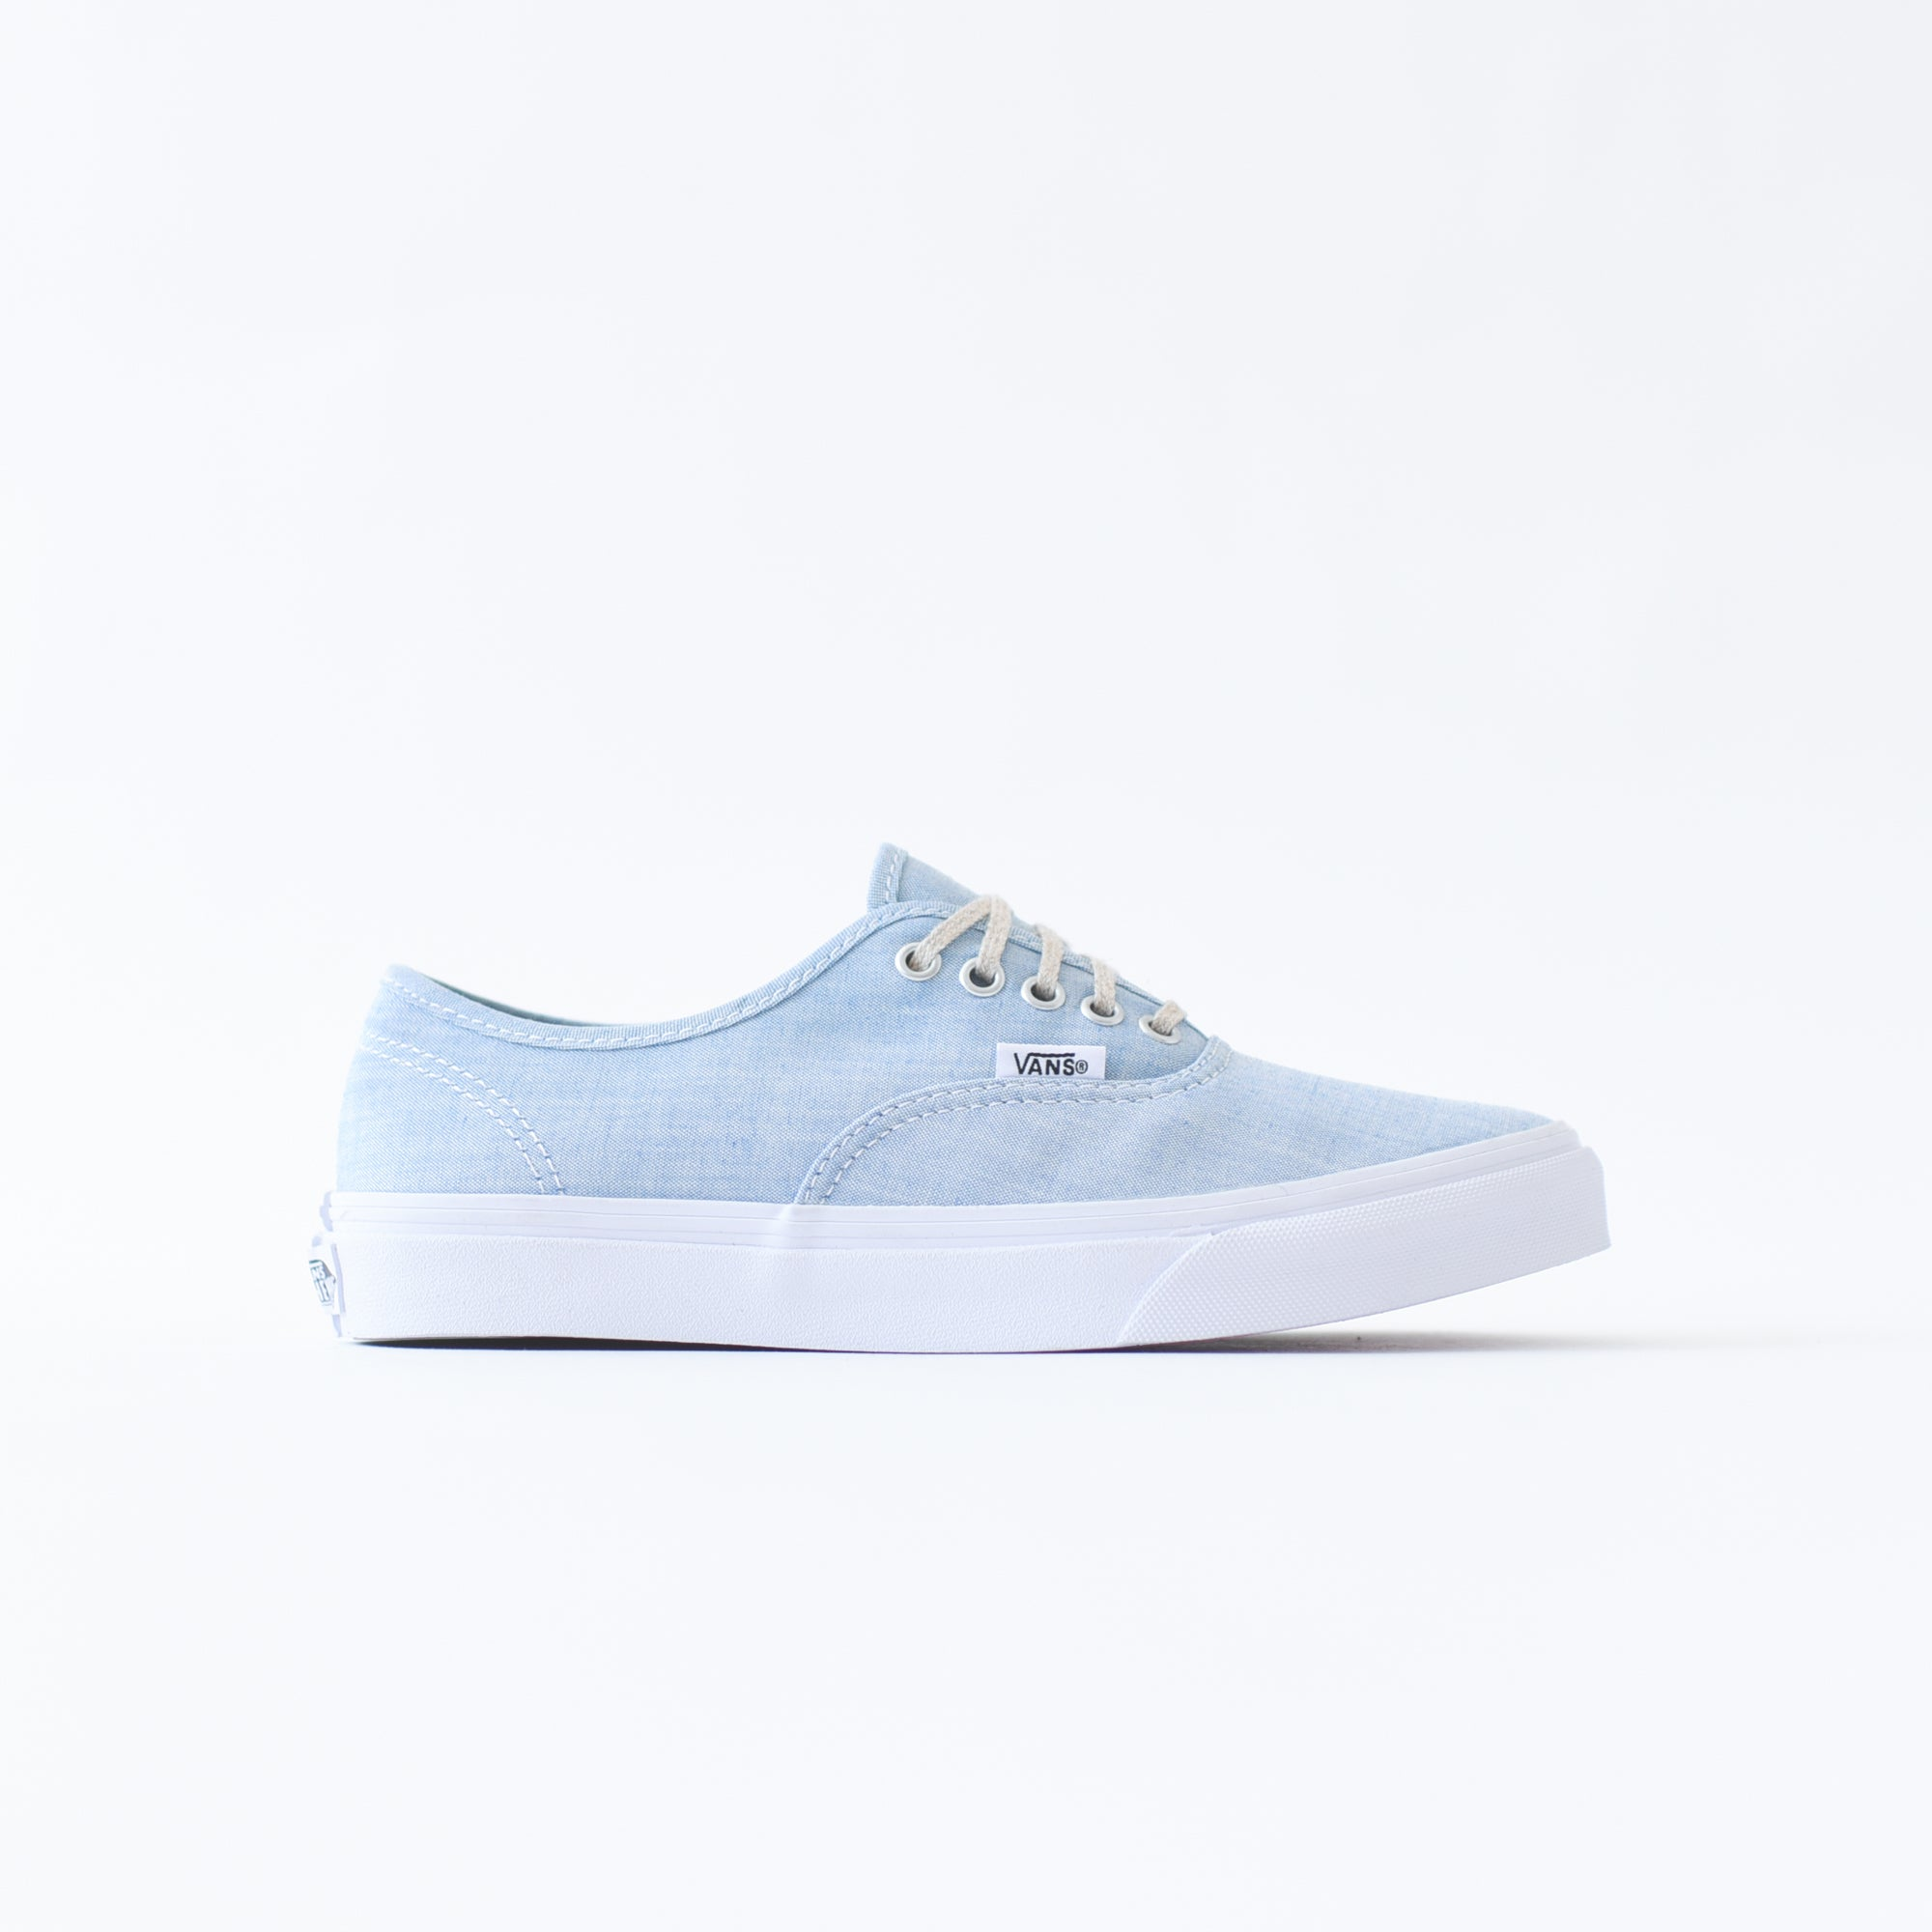 daf7f47700dc20 Vans WMNS Authentic Slim - Blue Chambray – Kith